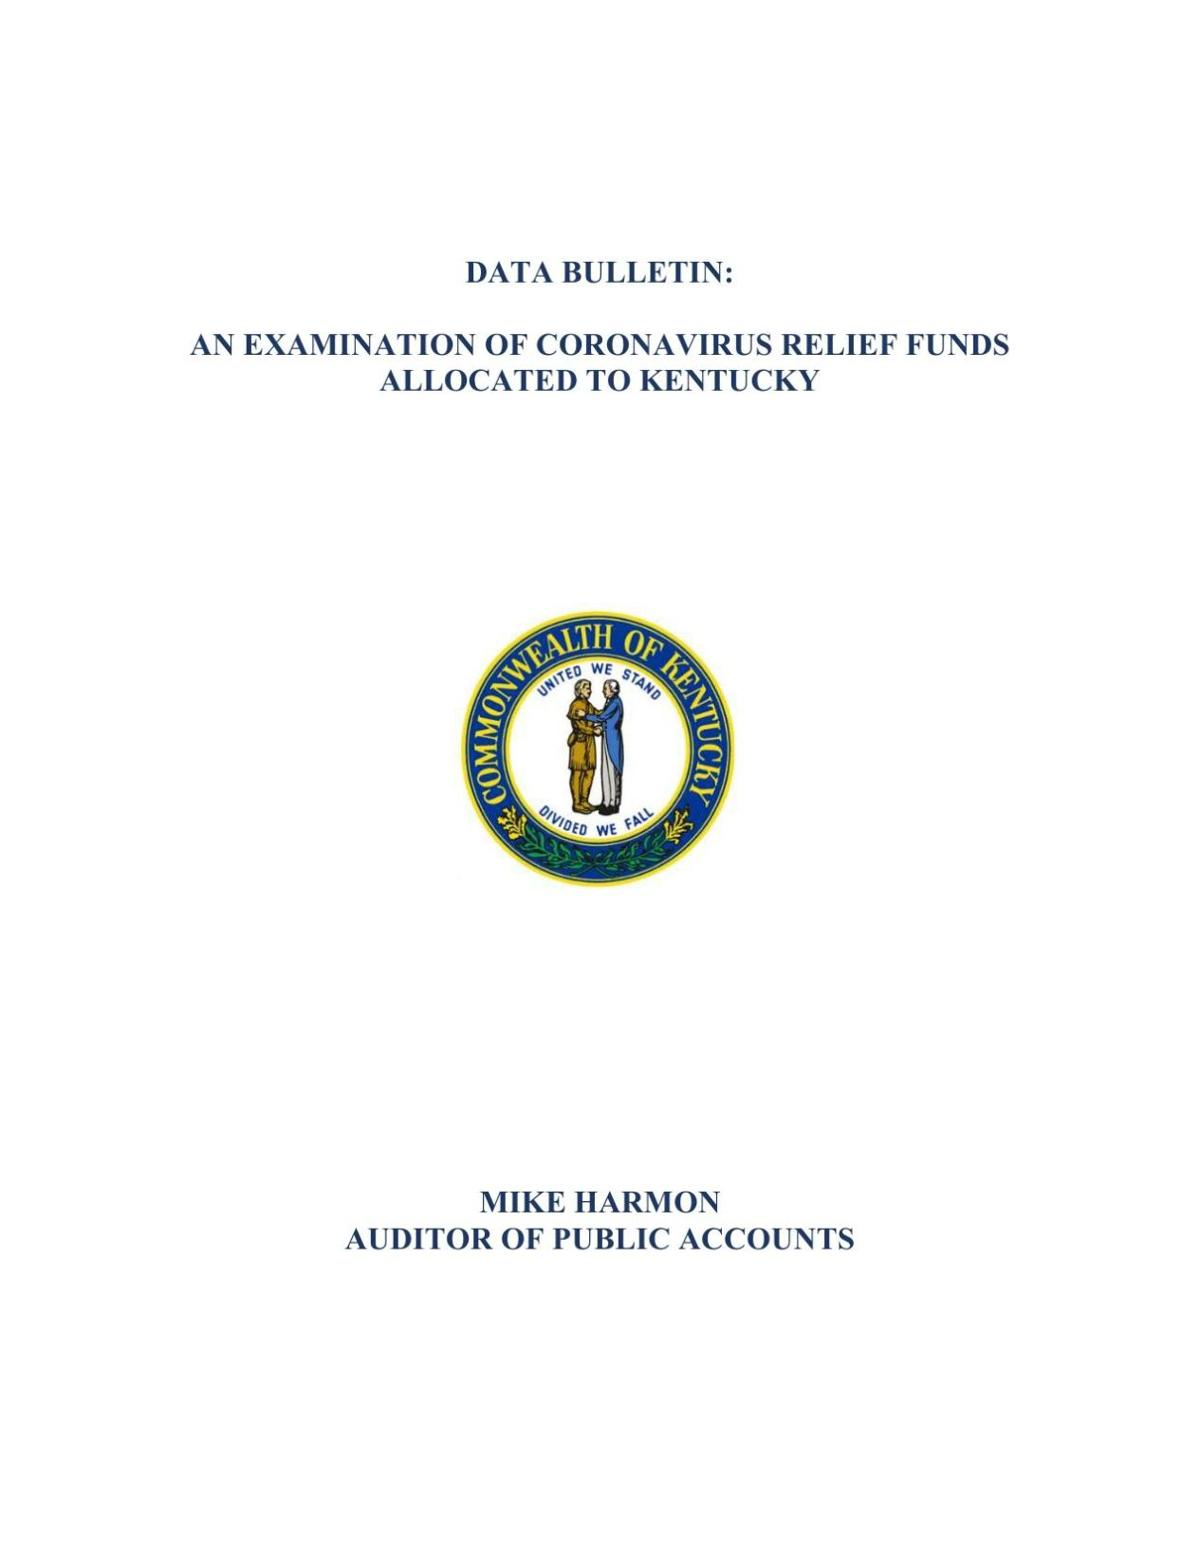 An examination of Coronavirus relief funds allocated to Kentucky